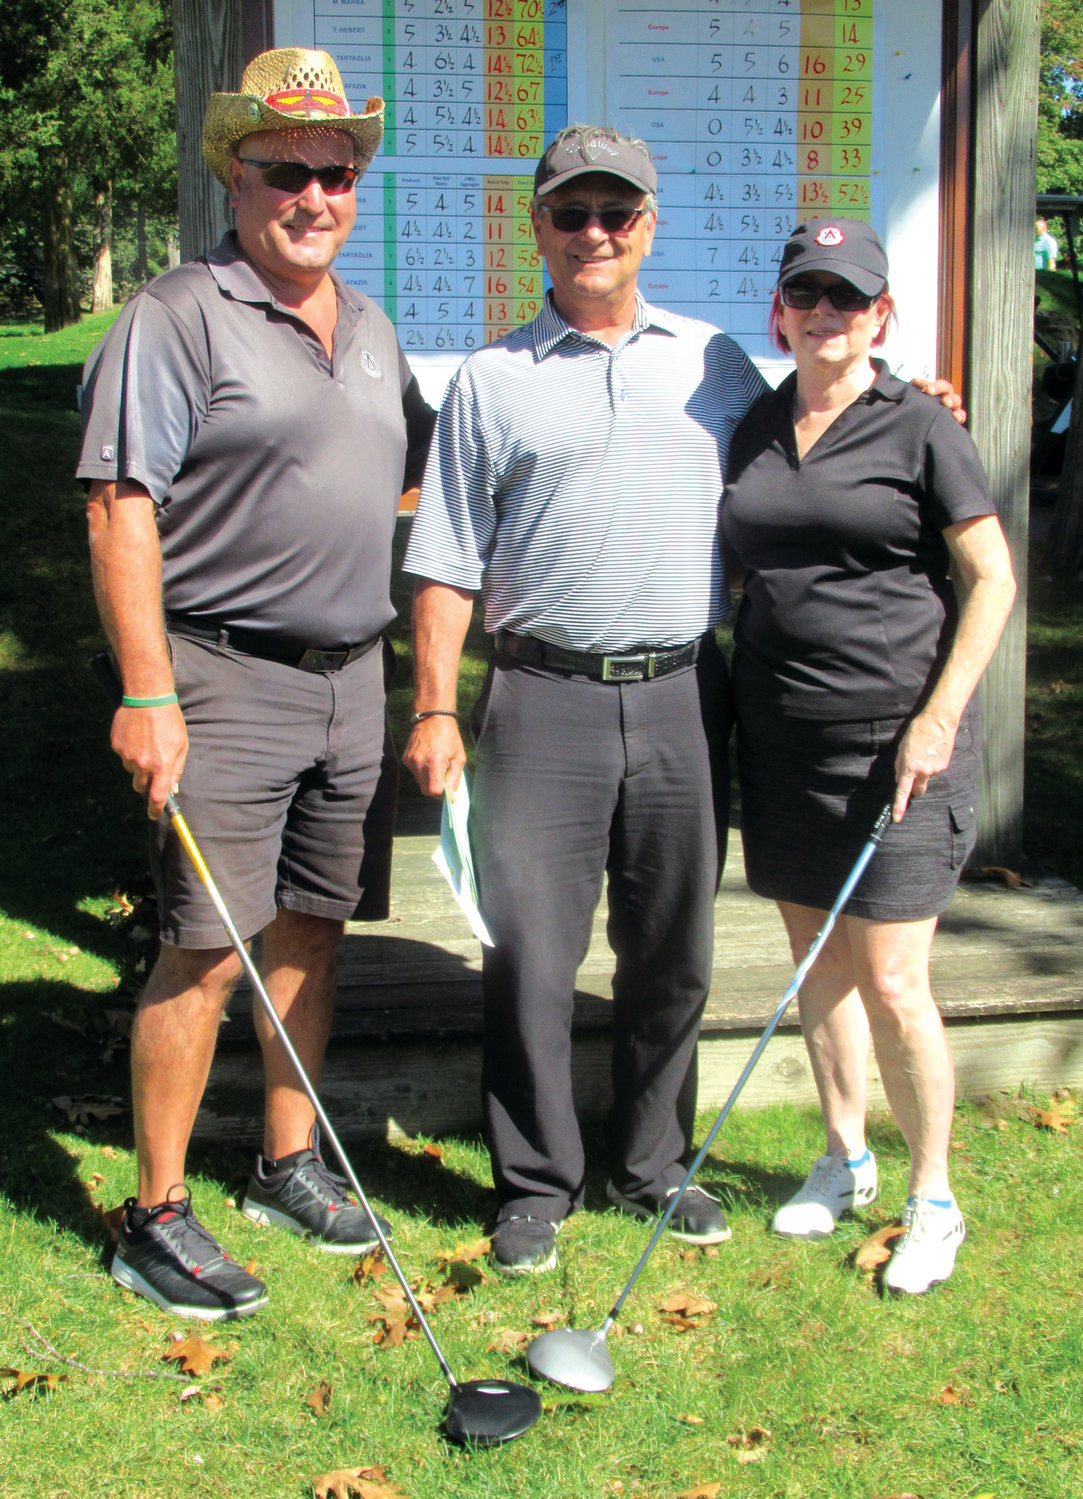 PRO'S PALS: GCC's popular pro Dave Baluik is joined by John and Patti Martin before they teed it up in the 5th Annual JMCE Memorial Golf Tournament.